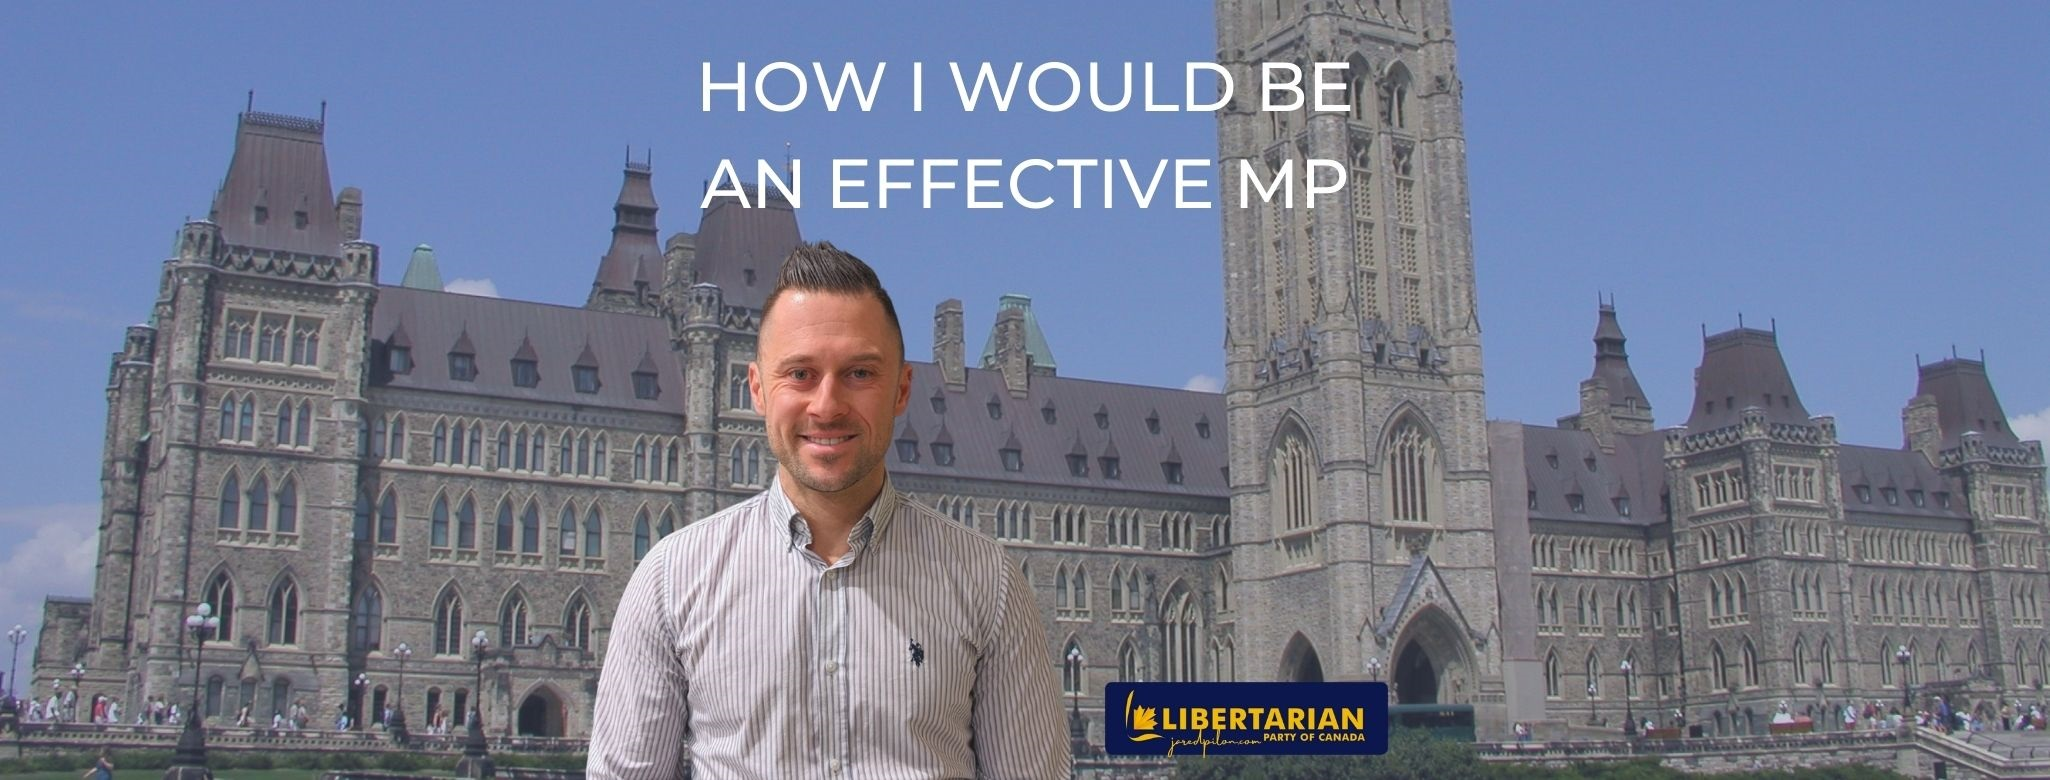 How I Would be an Effective MP